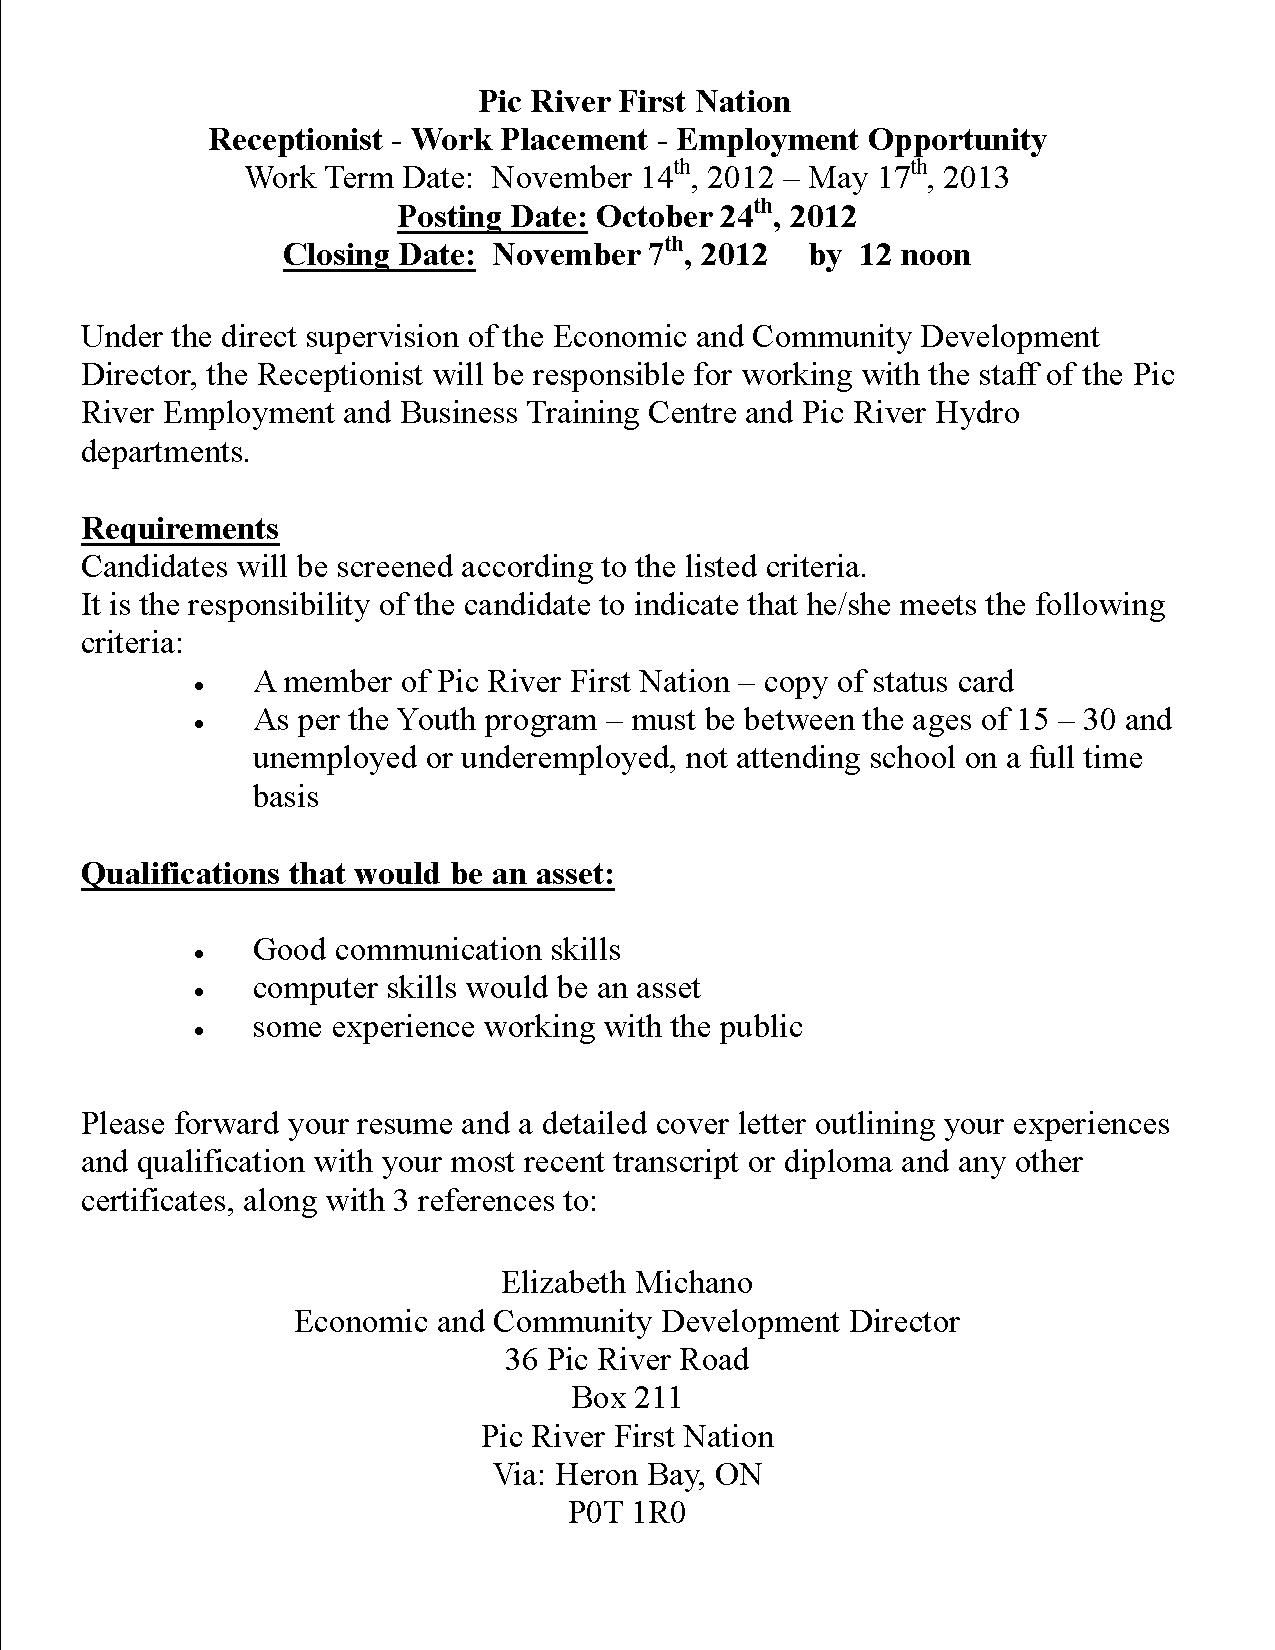 Sample Resume For Receptionist Gorgeous Medical Office Receptionist Resume Objective Sample Scholarship Decorating Design